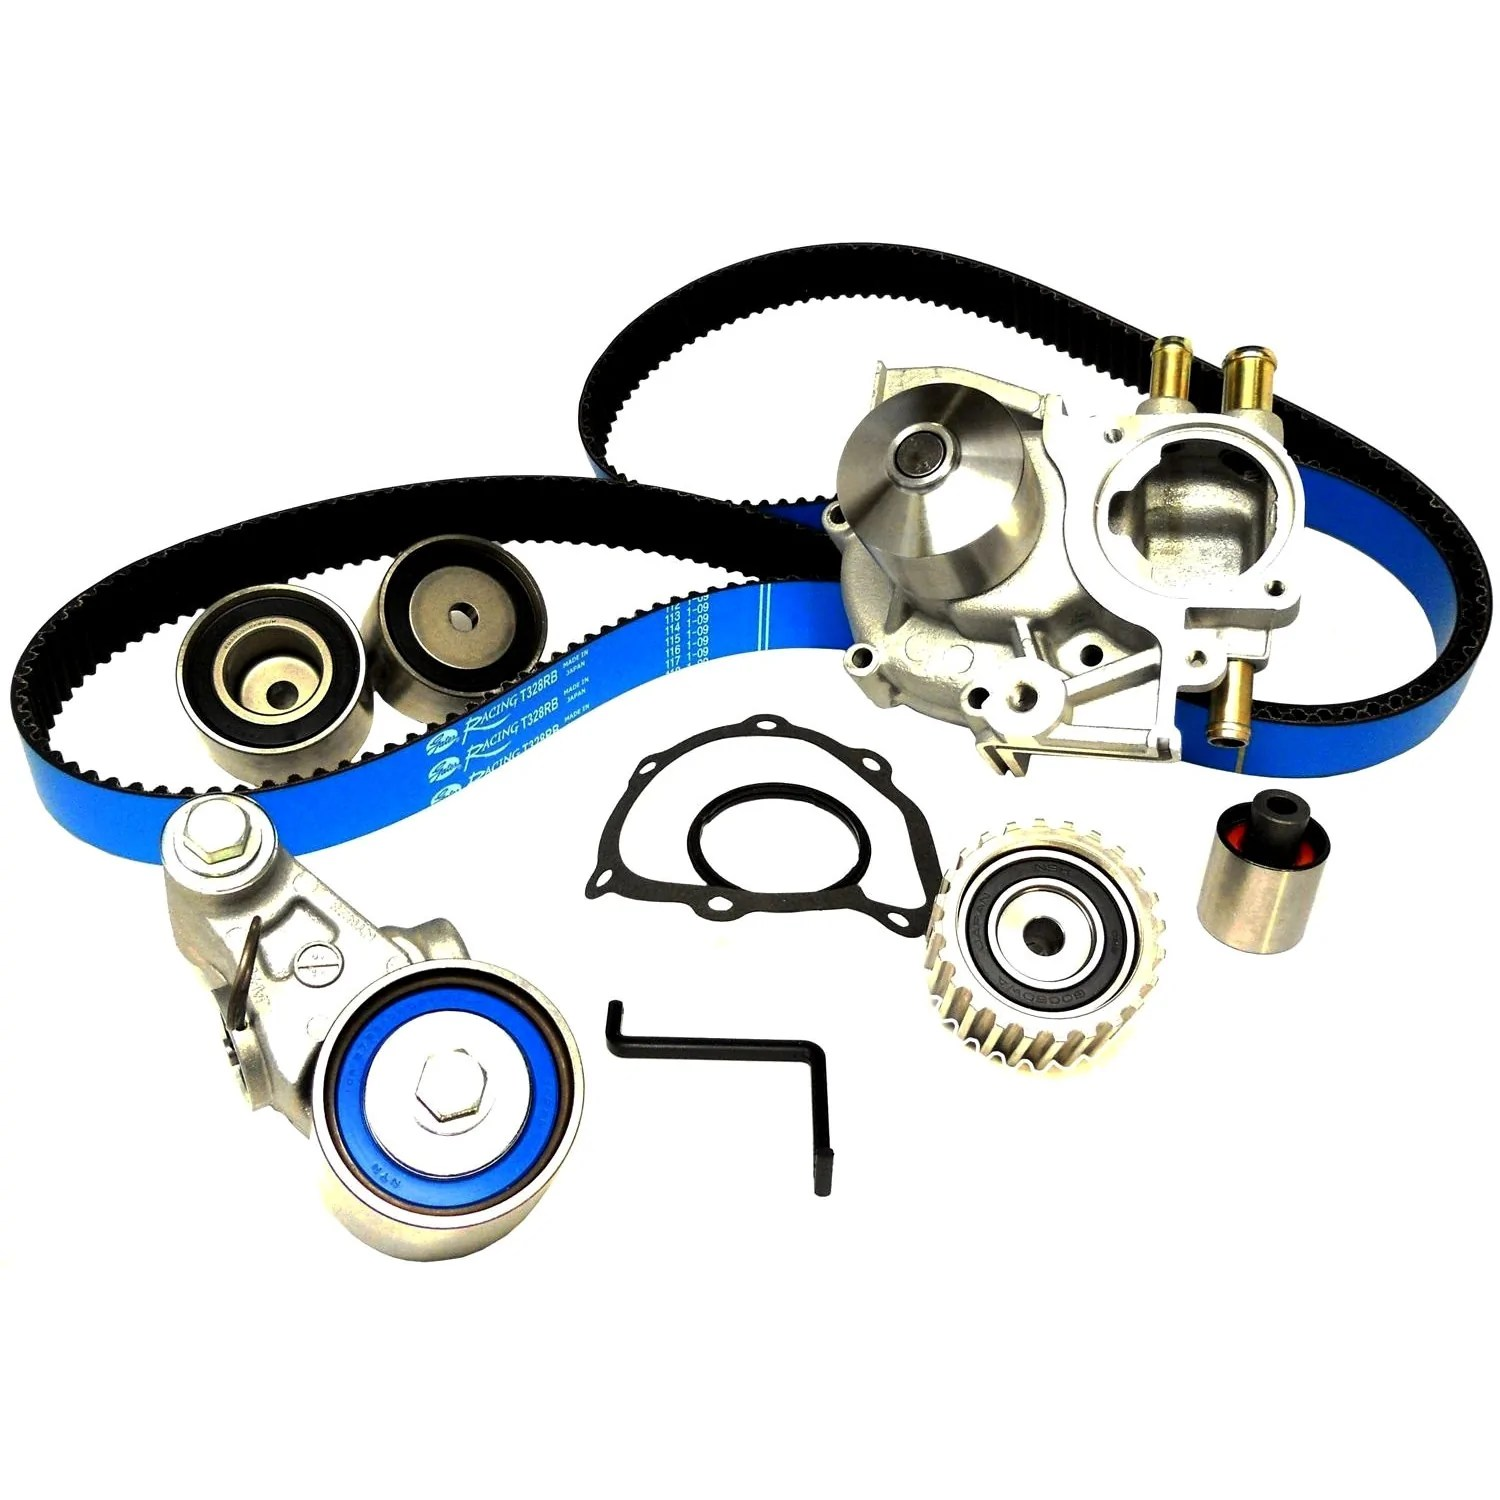 small resolution of gates racing timing belt kit with water pump 2005 2009 legacy gt outback xt